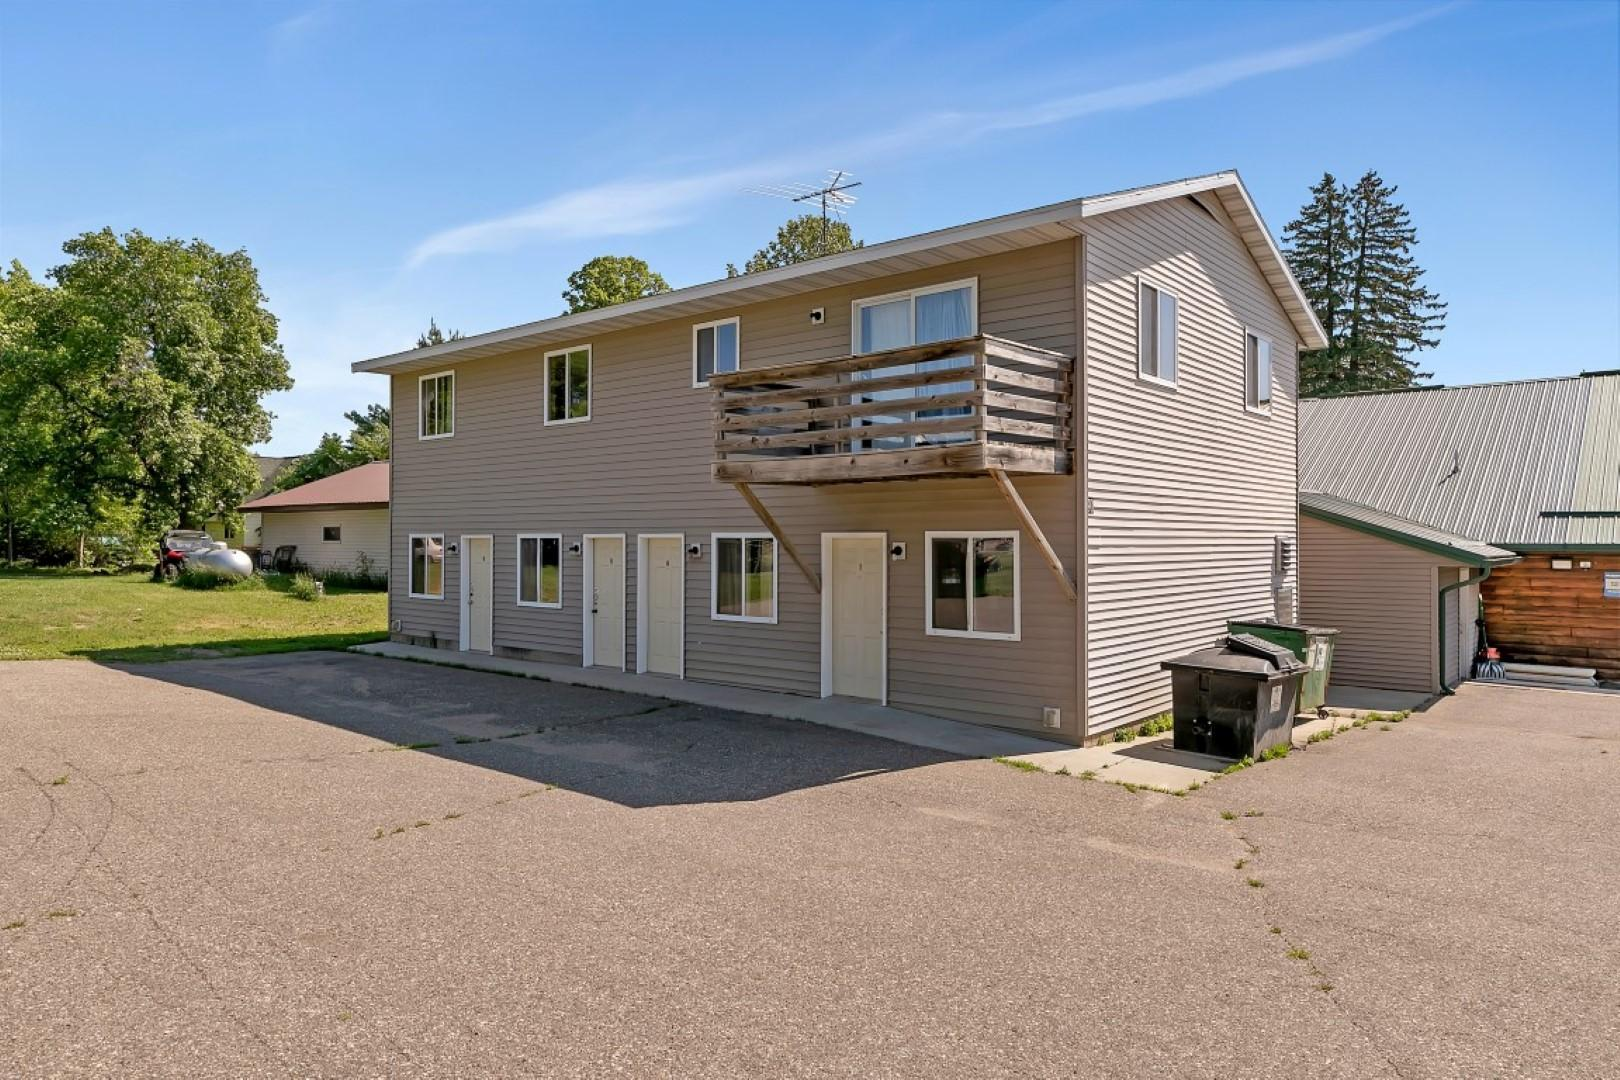 1 - 3 bedroom apartment, 4-1 bedroom hotel - efficiency units, no kitchen.  Owner will not sell rental unit prior to the sale of bar/restaurant.  Purchaser of Bar/restaurant has 1st option to purchase rental unit.  Current bar/restaurant/rental on one PID, seller will divide if purchased separately.